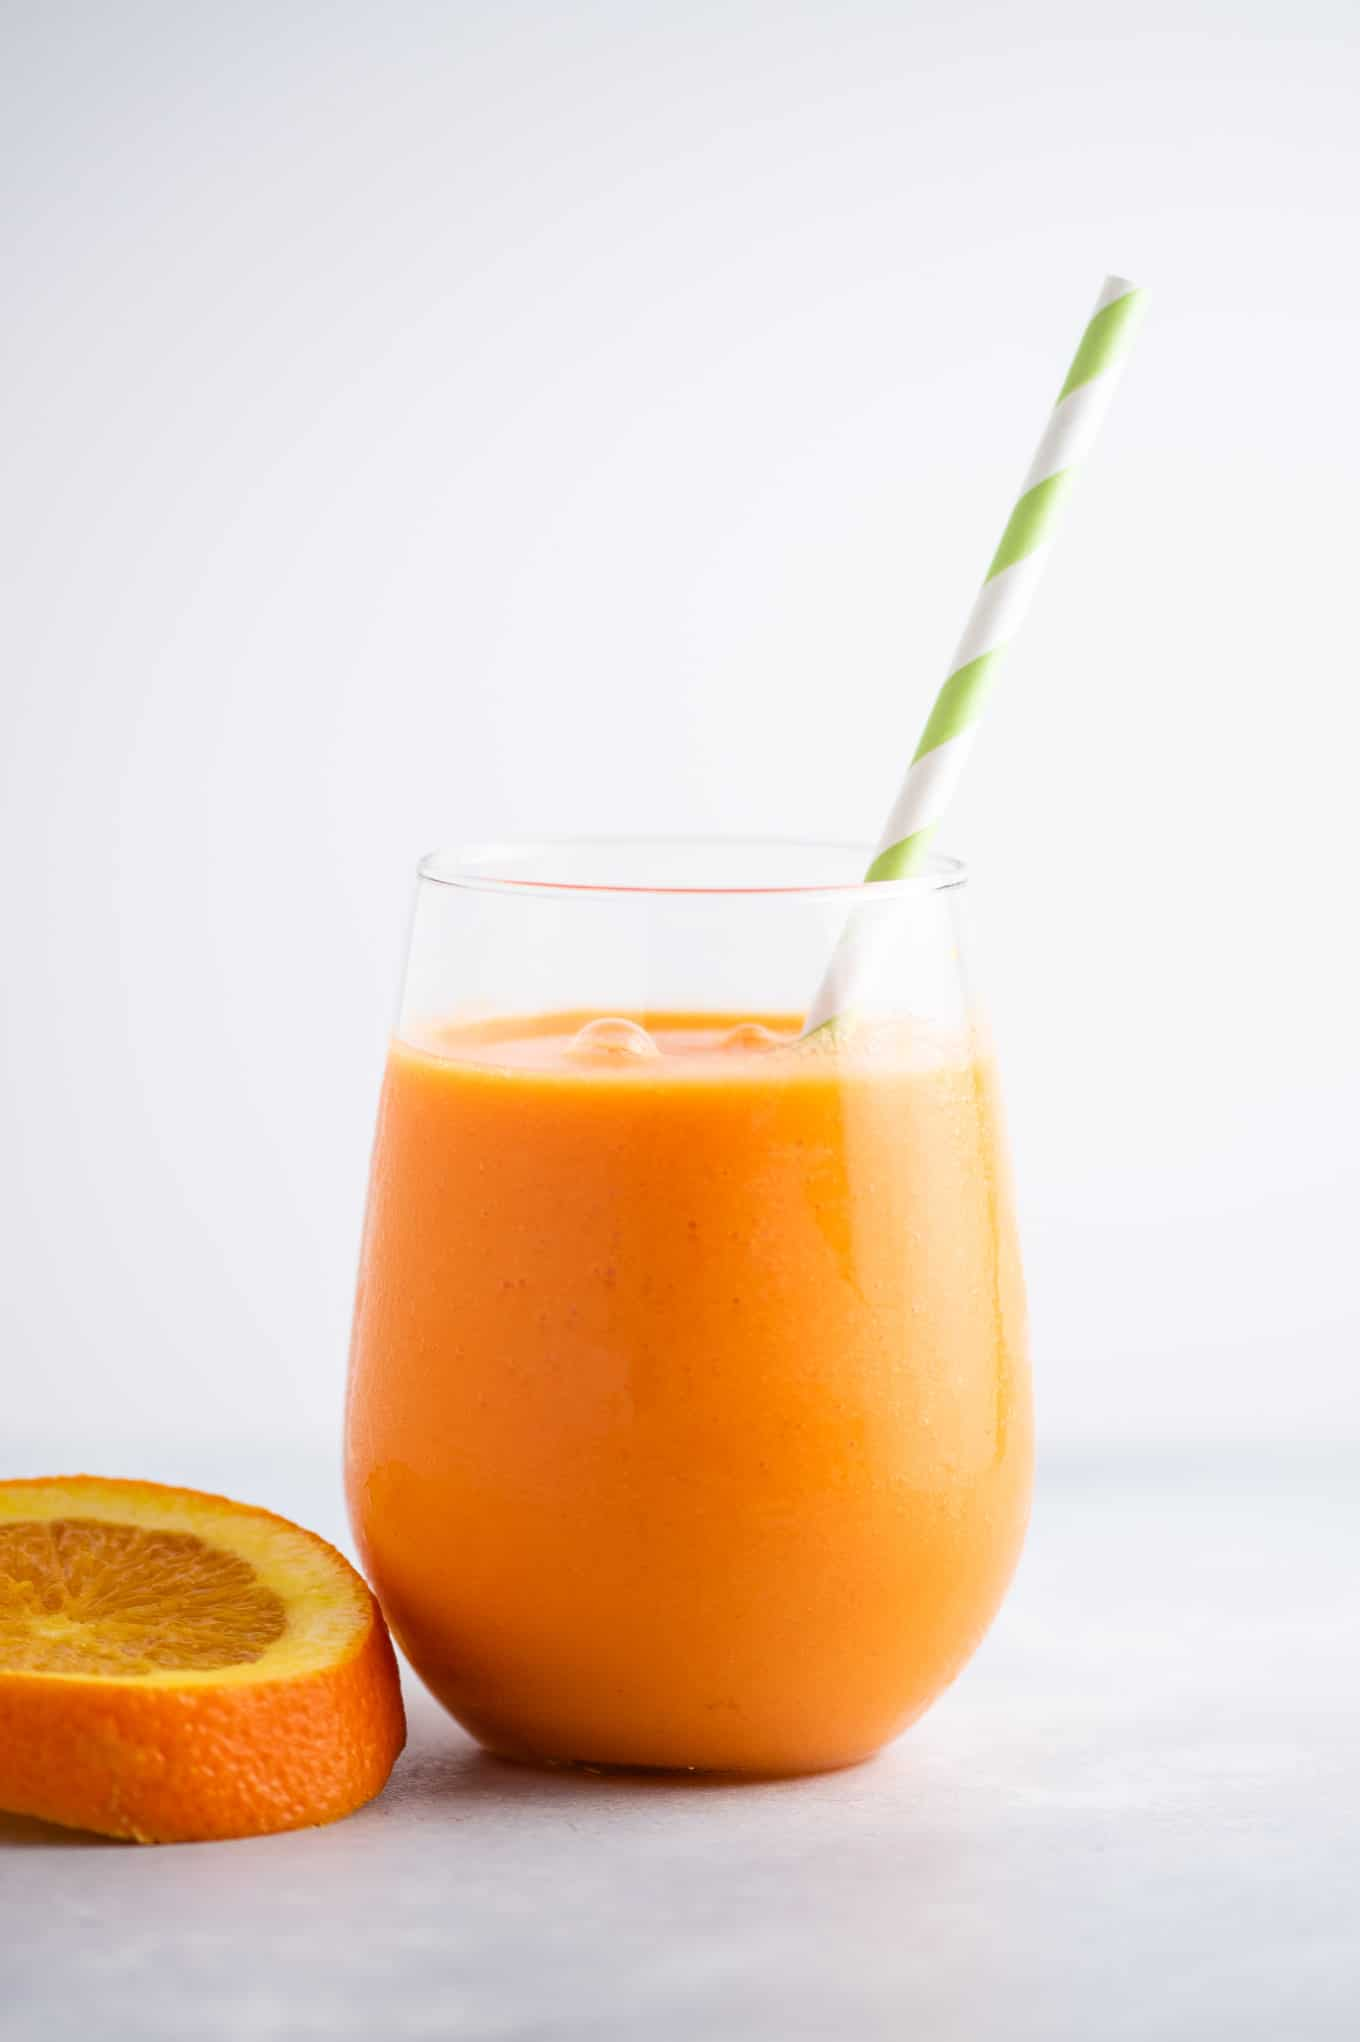 carrot orange smoothie with a green and white straw in it